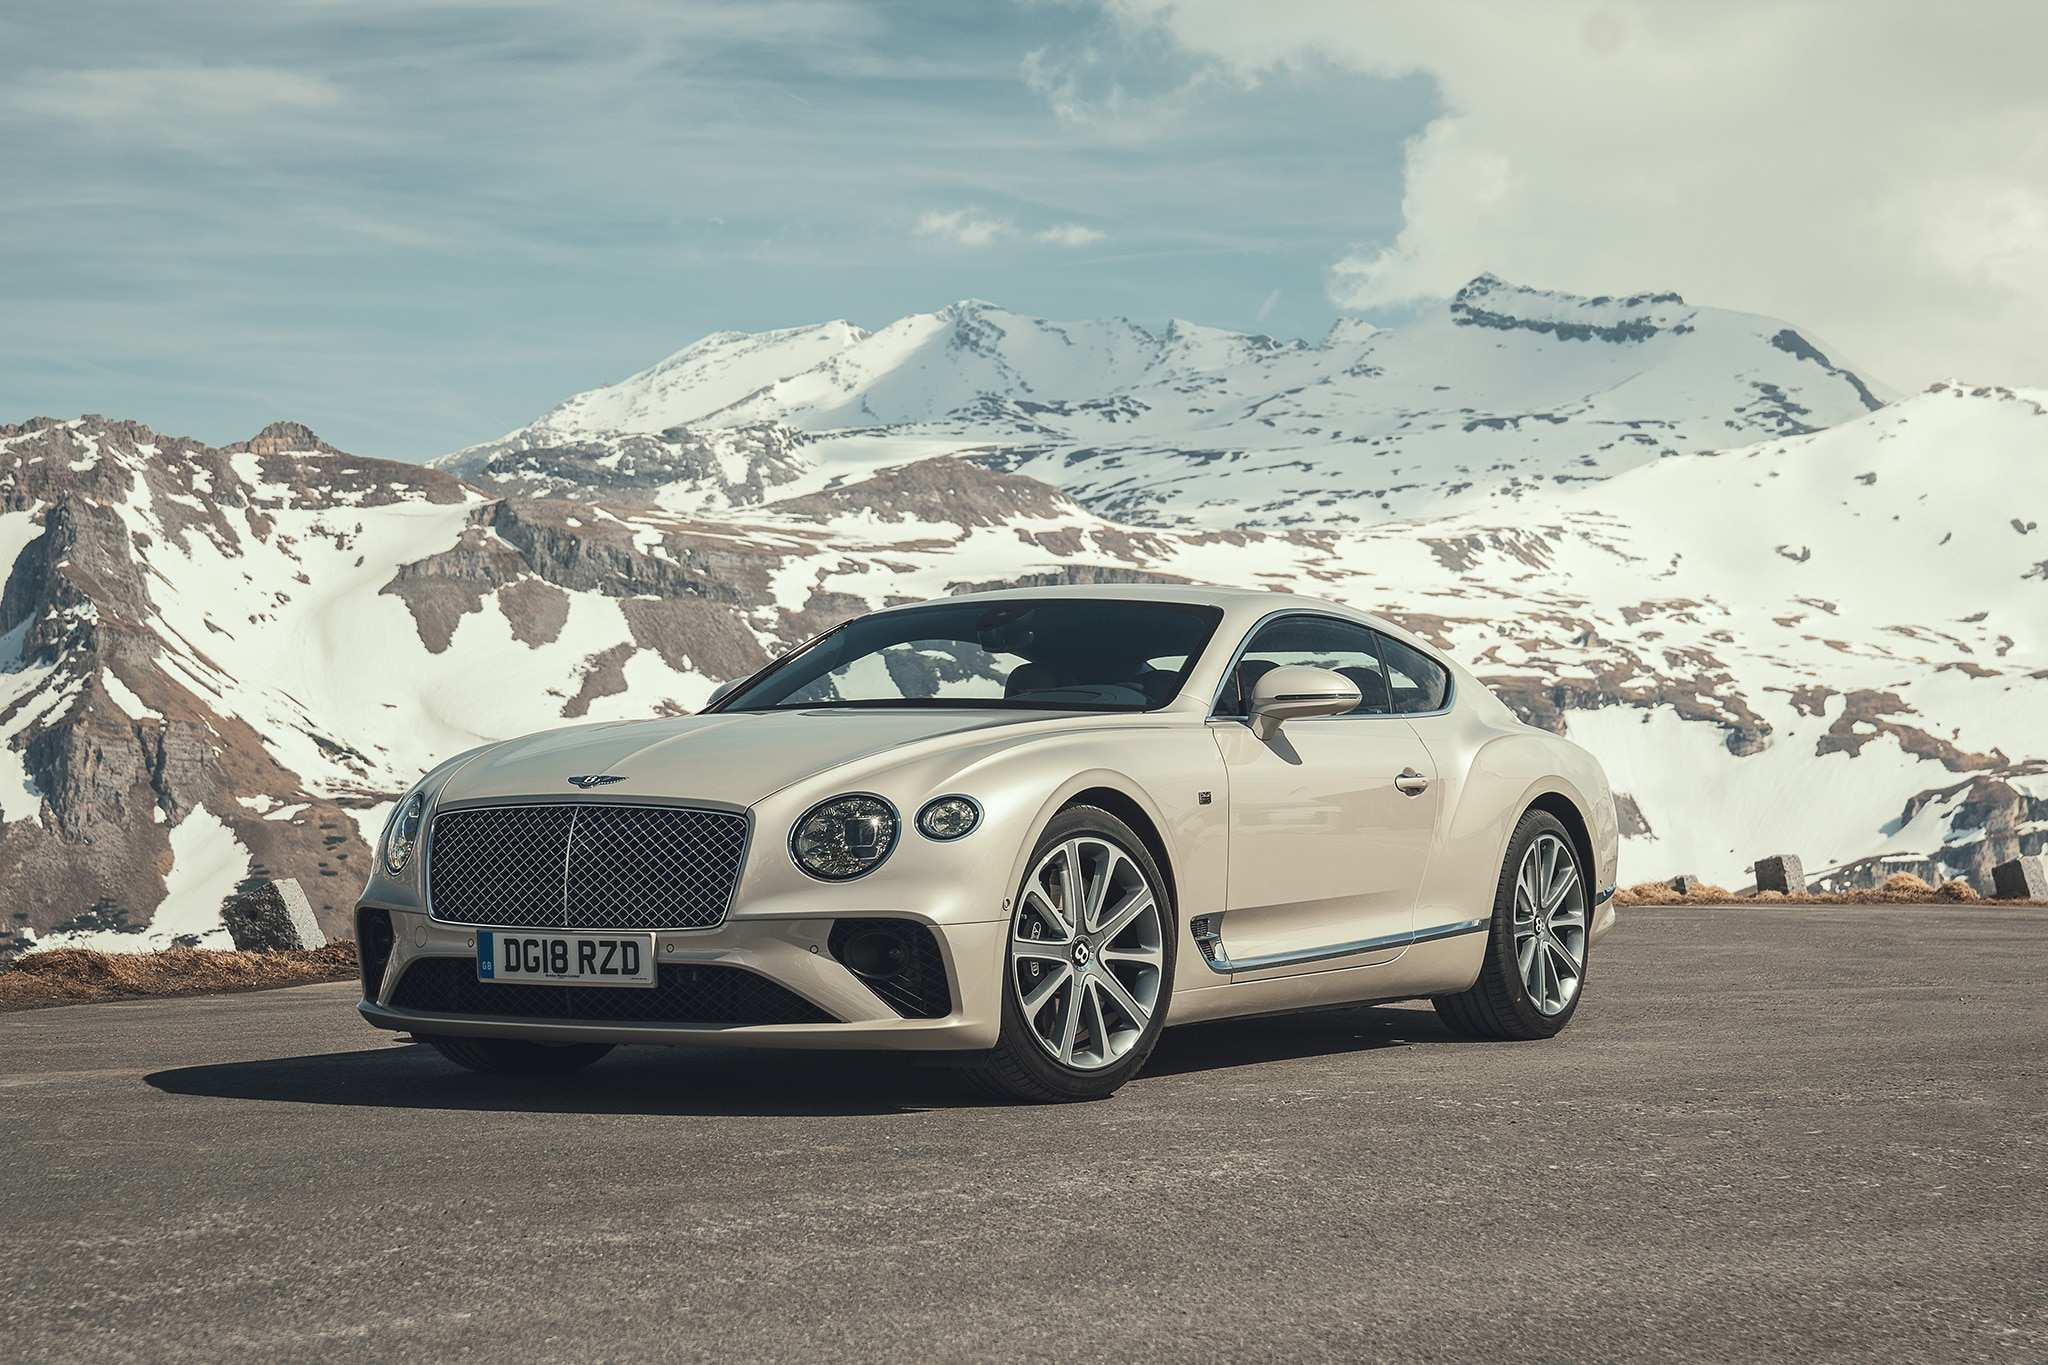 70 Best Review 2019 Bentley Continental Rumors by 2019 Bentley Continental